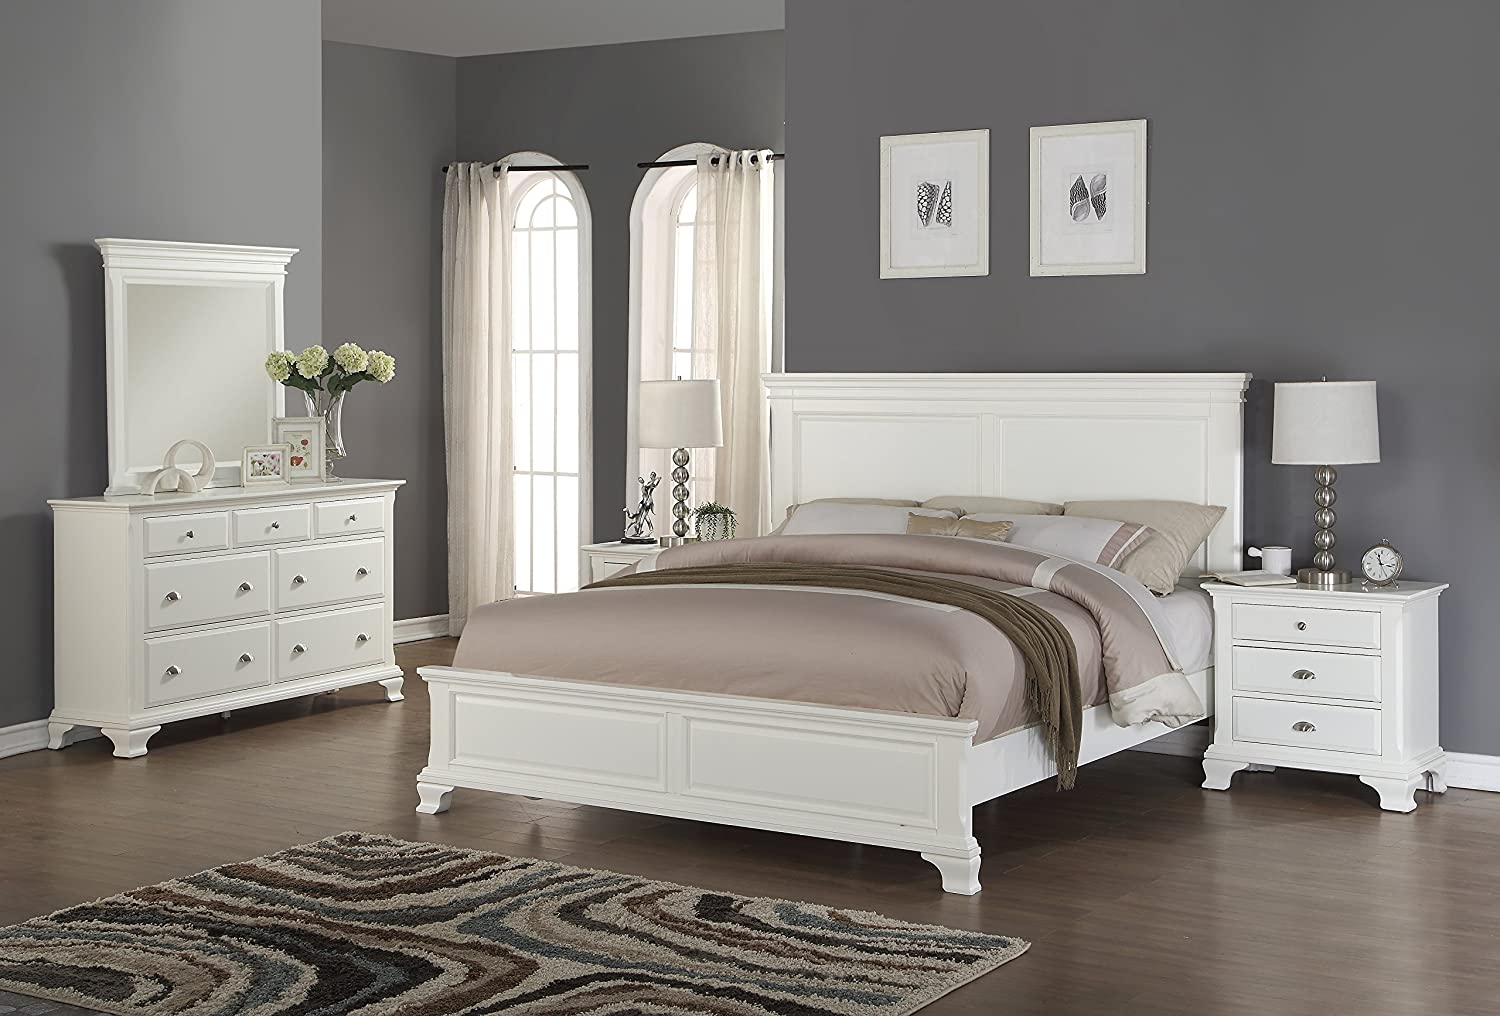 Amazon.com: Roundhill Furniture Laveno 012 White Wood 7 Drawer Dresser And  Mirror: Kitchen U0026 Dining